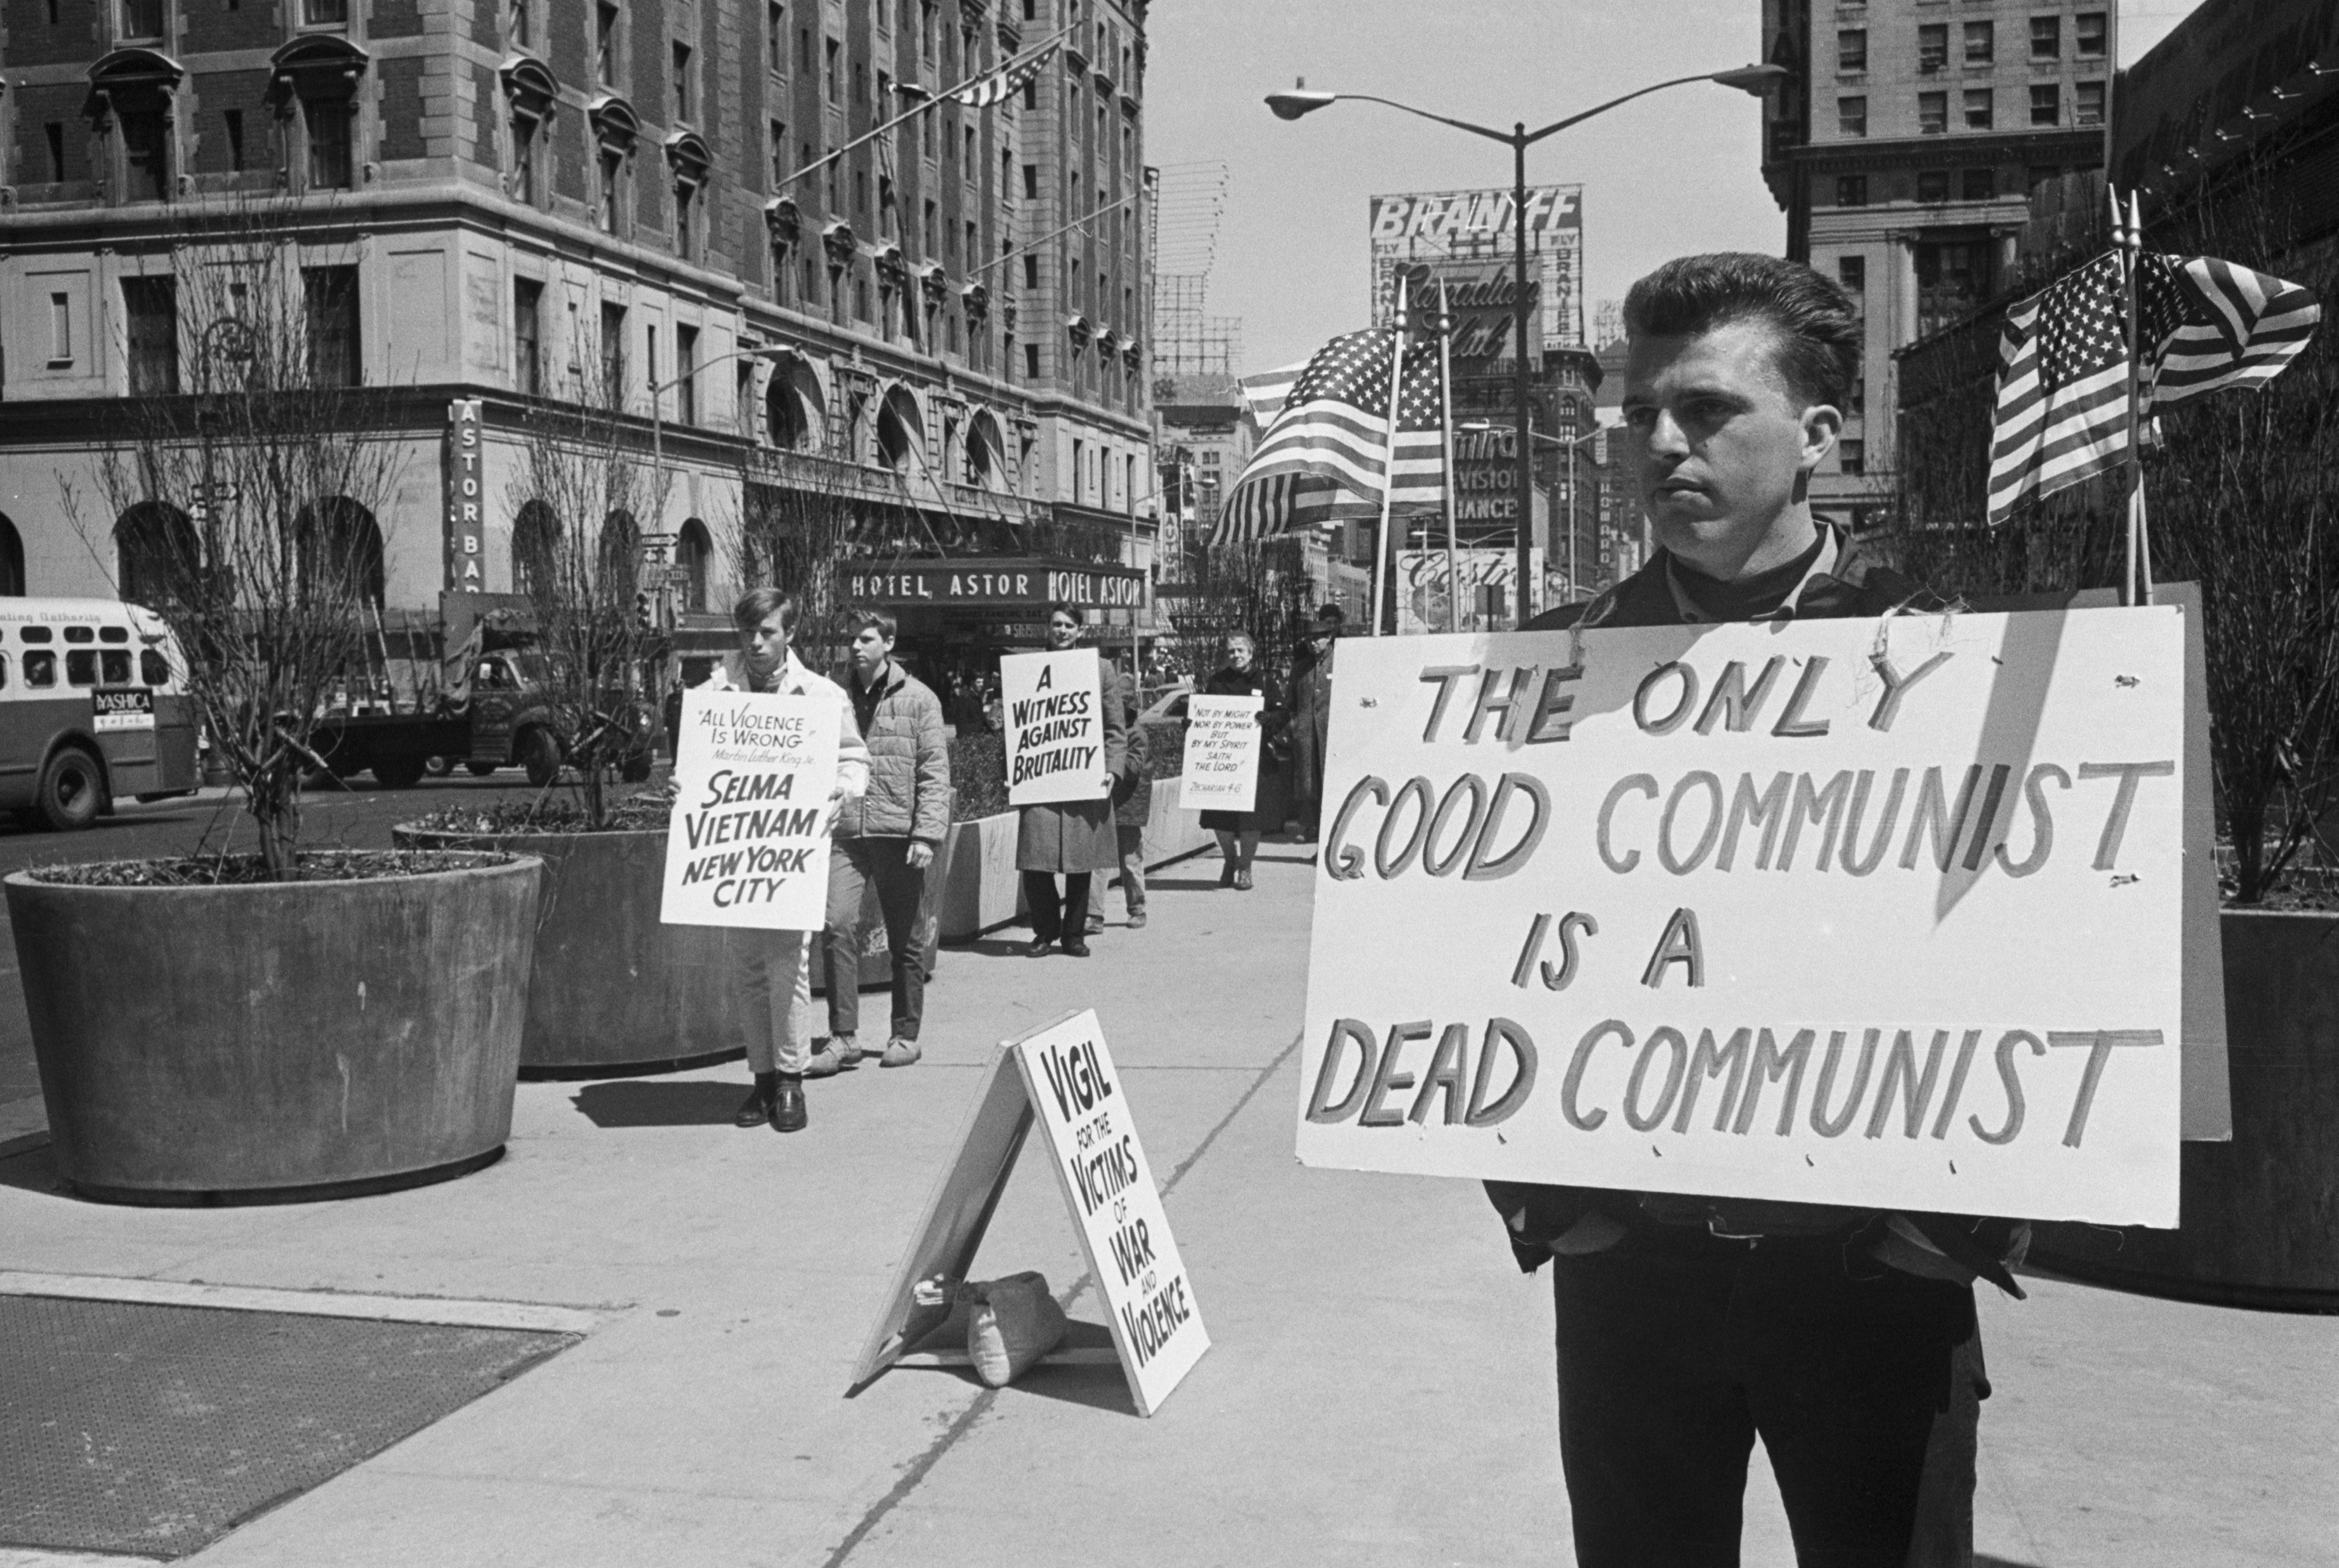 Antiwar protesters in 1965 stand to the left of a counter-demonstrator with a sign reading